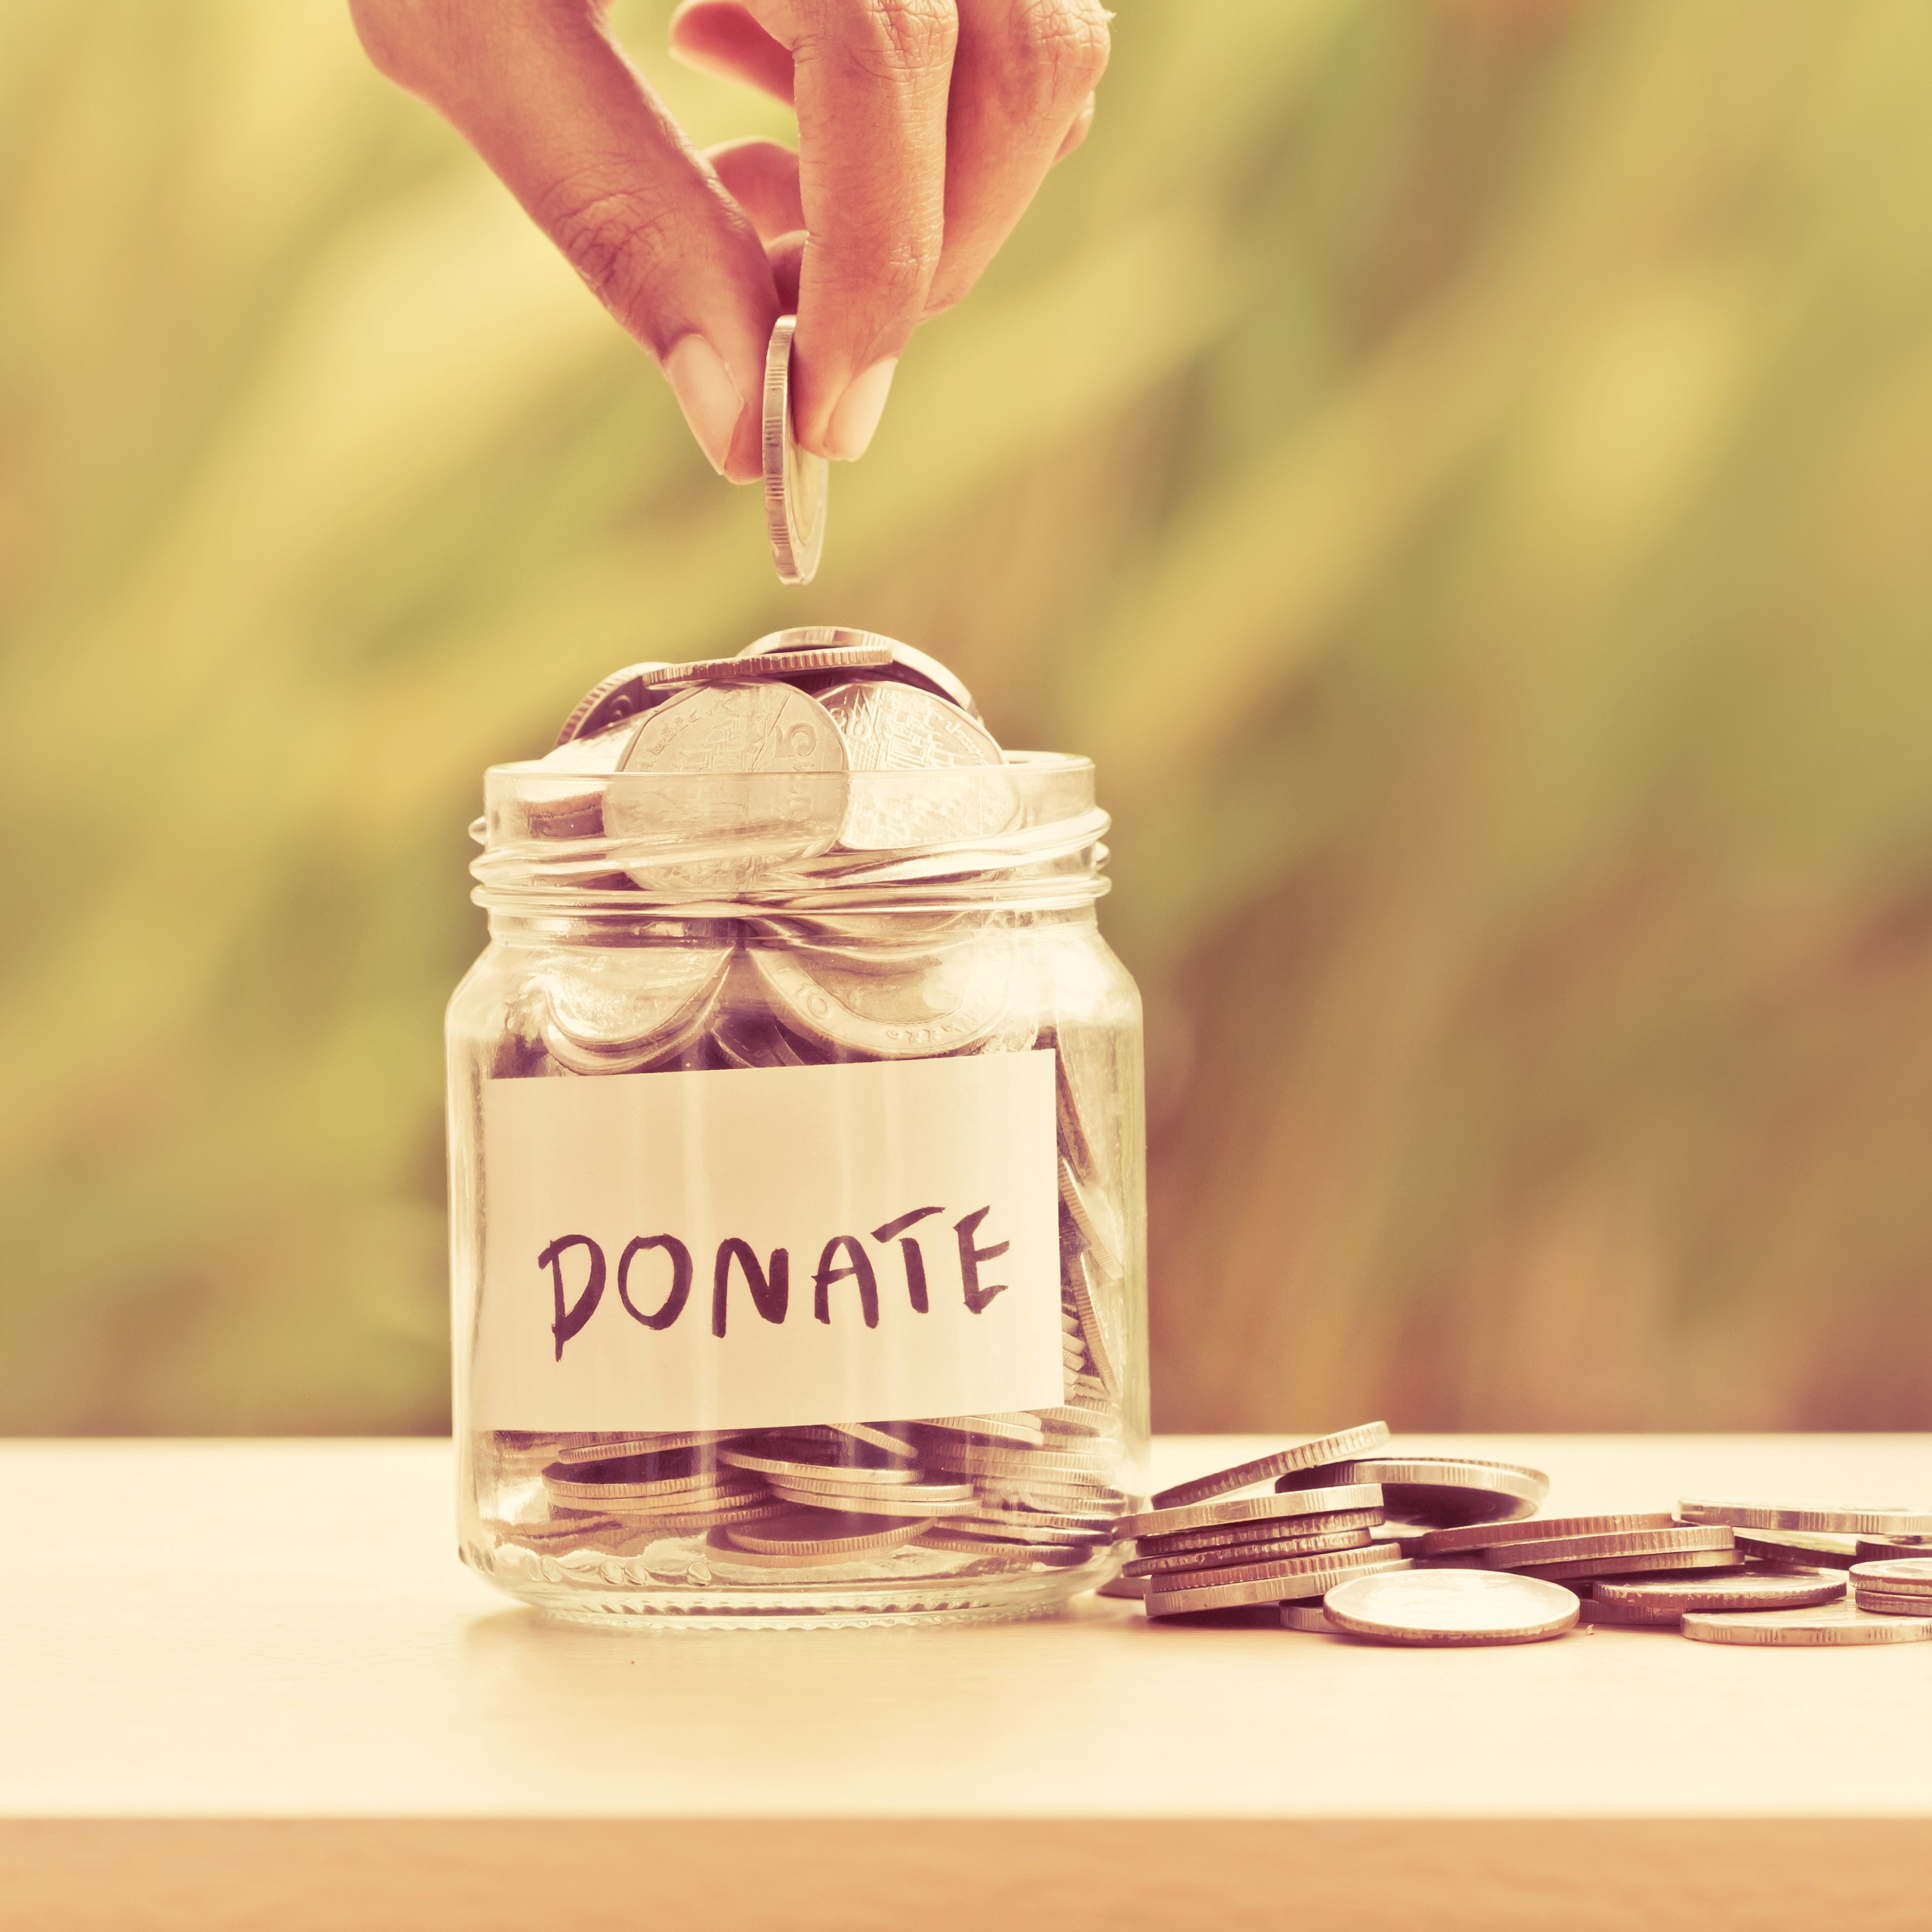 Prime Days - Are Charities Smiling?